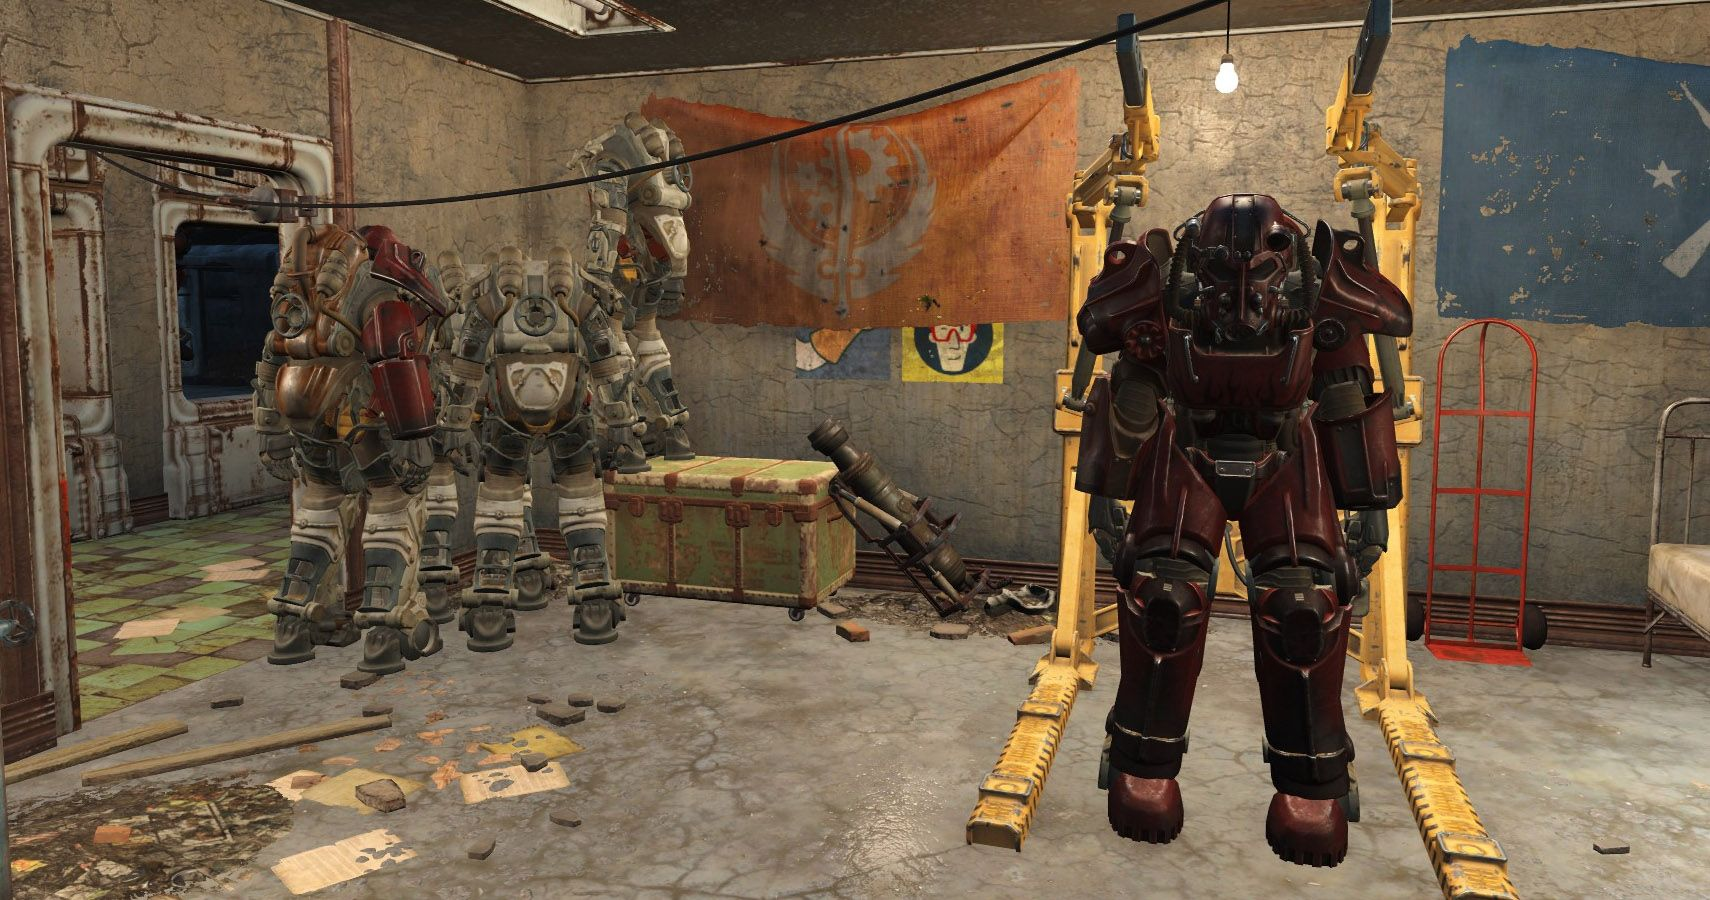 Fallout 4: 25 Tricks From The Game Players Have No Idea About